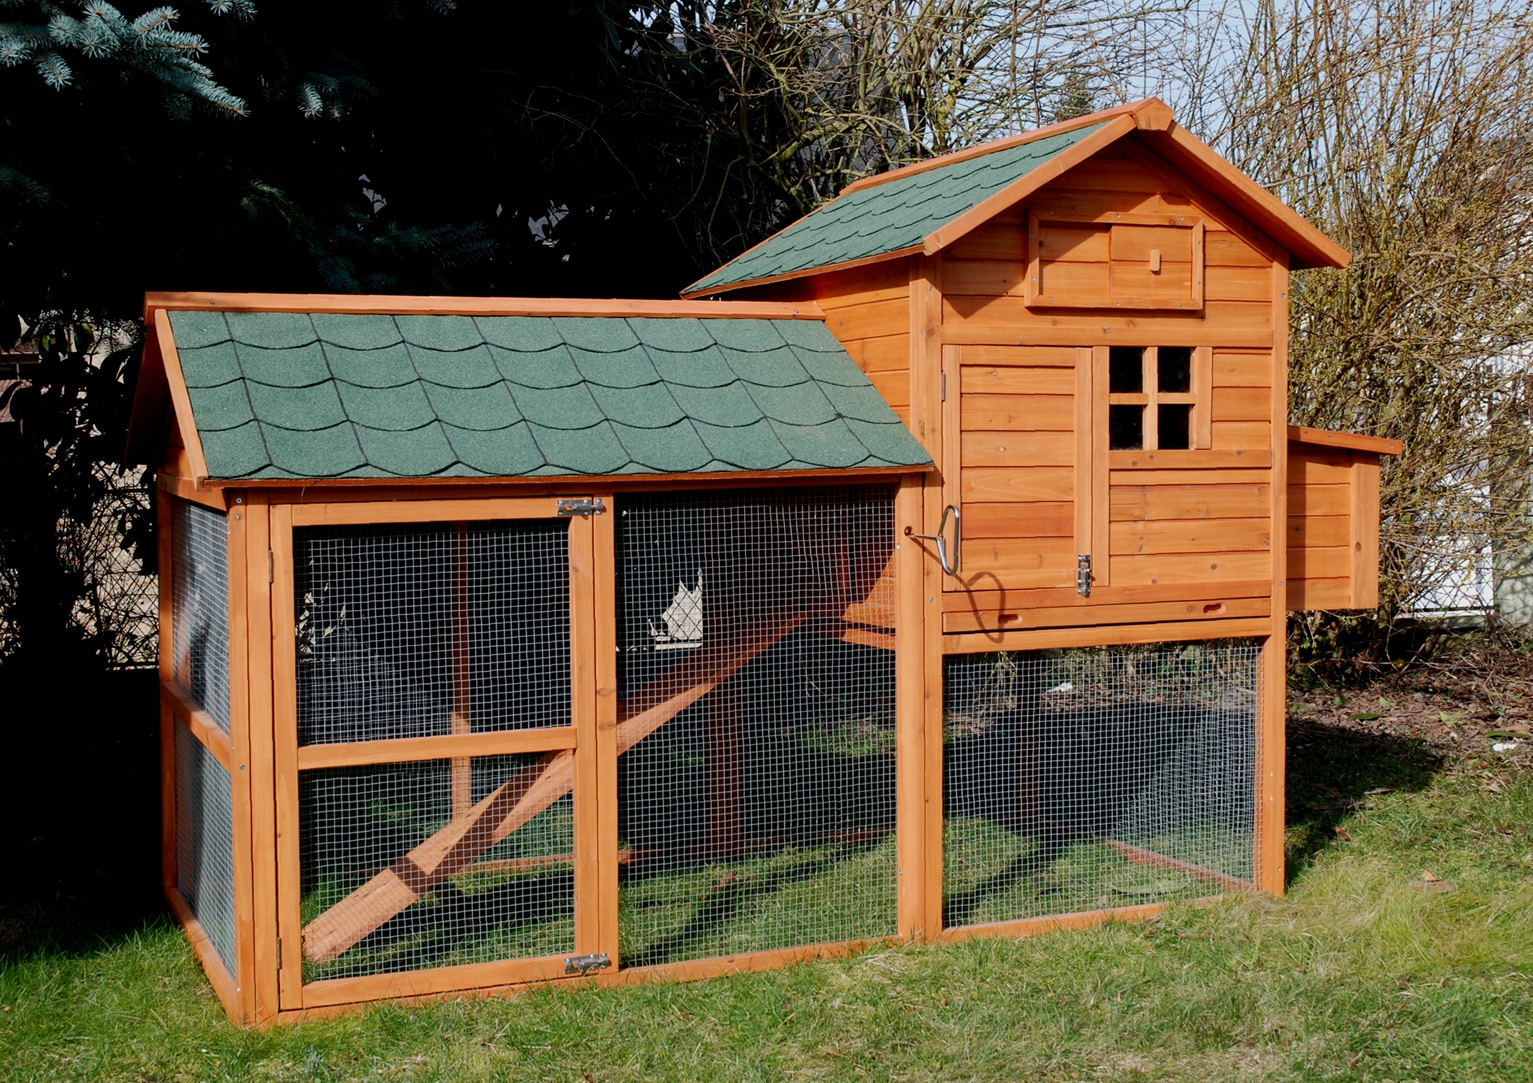 poulailler-6-poules-house.JPG